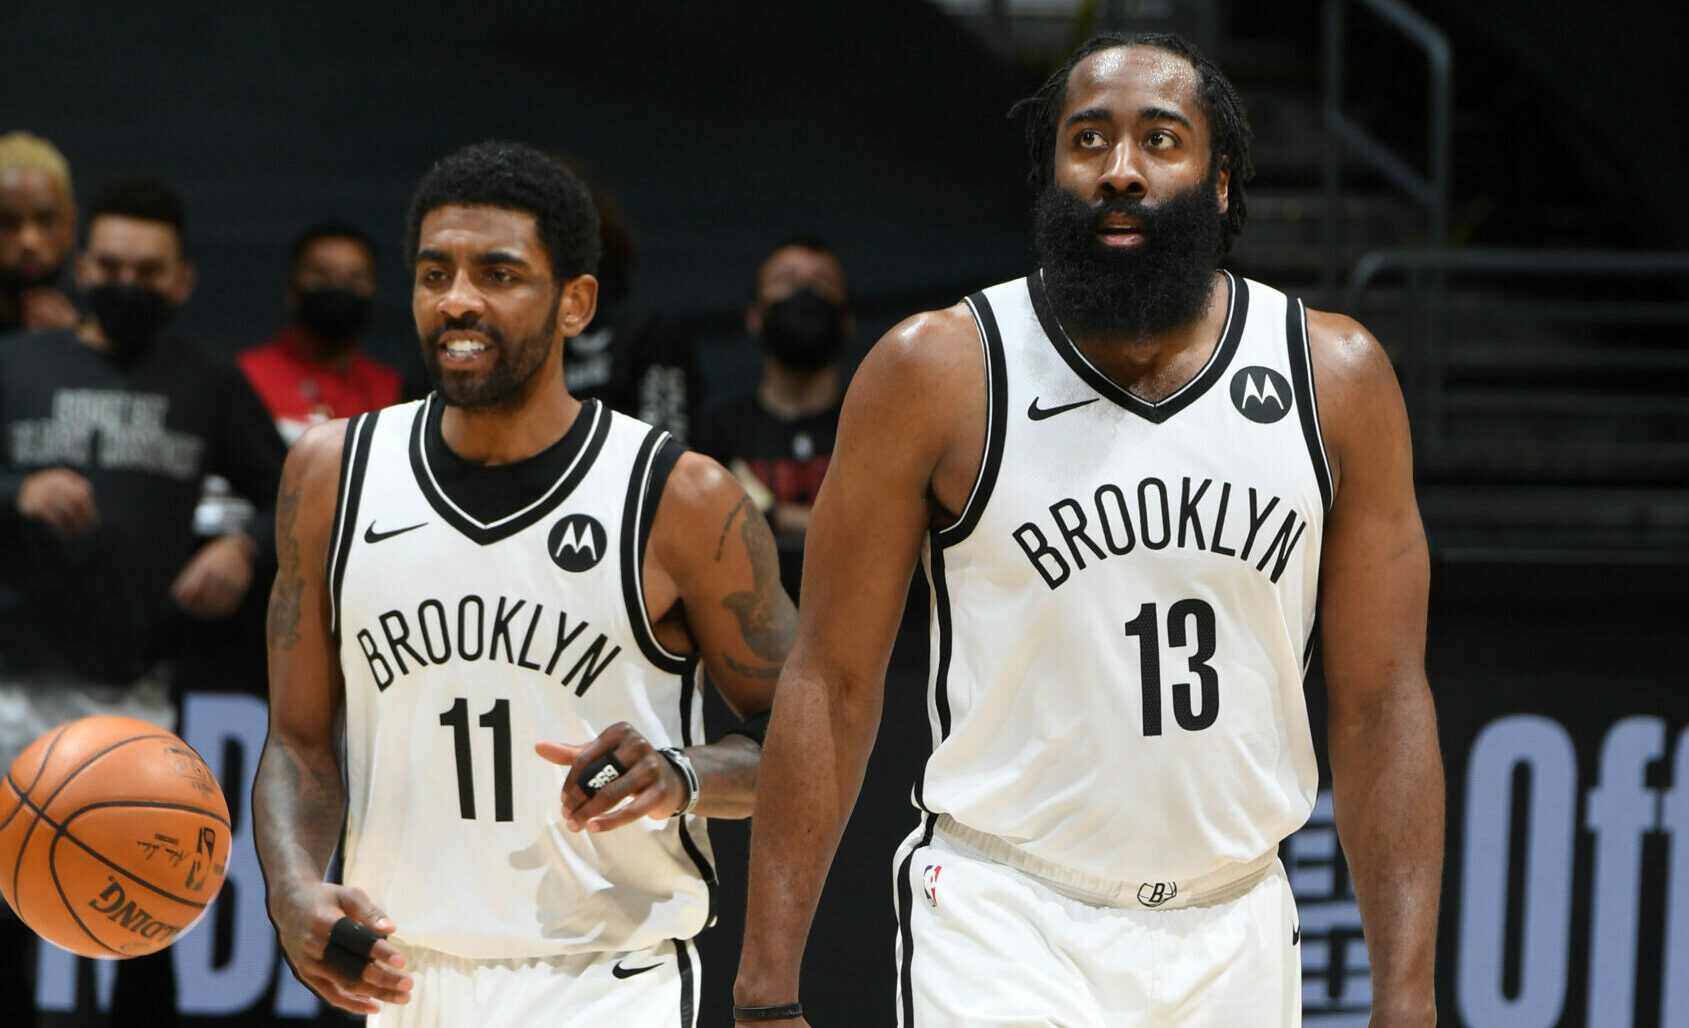 Power Rankings, Week 12: Nets climb to No. 1; Lakers, Bucks exit Top 5